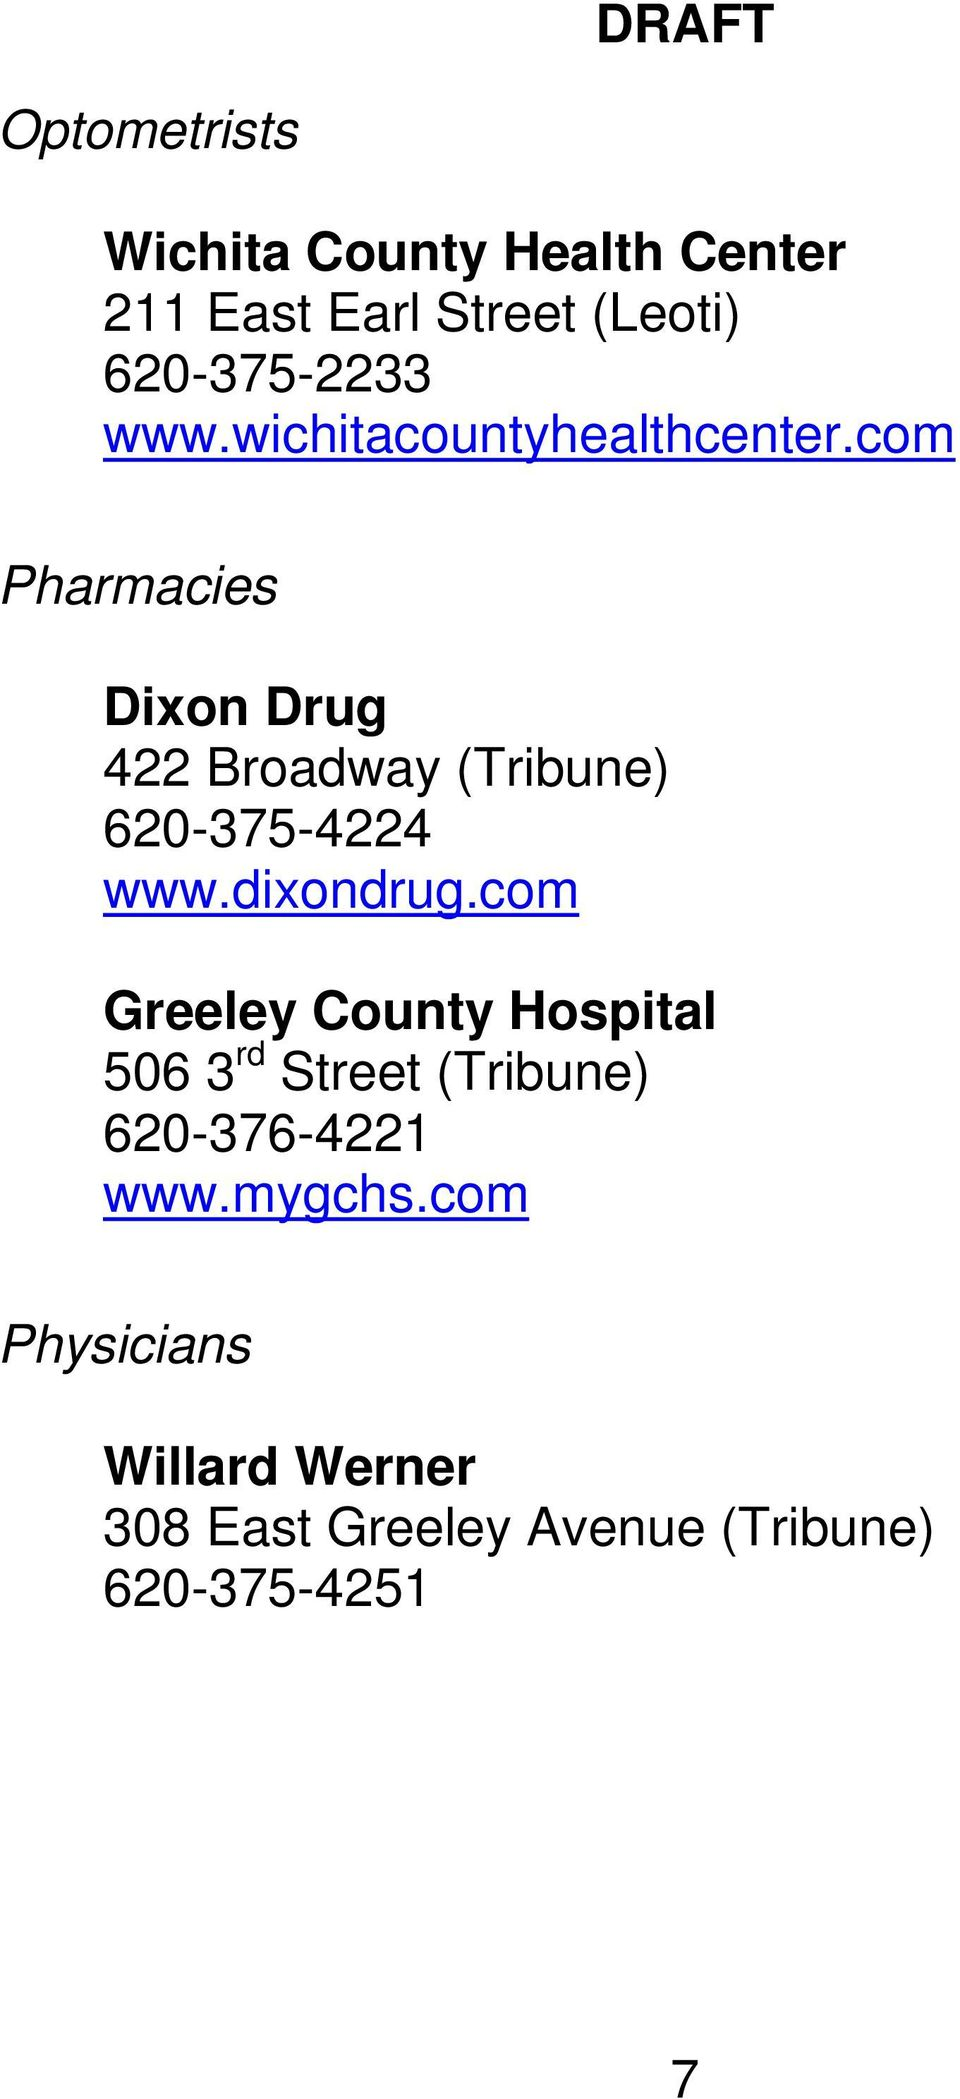 com Pharmacies Dixon Drug 422 Broadway (Tribune) 620-375-4224 www.dixondrug.